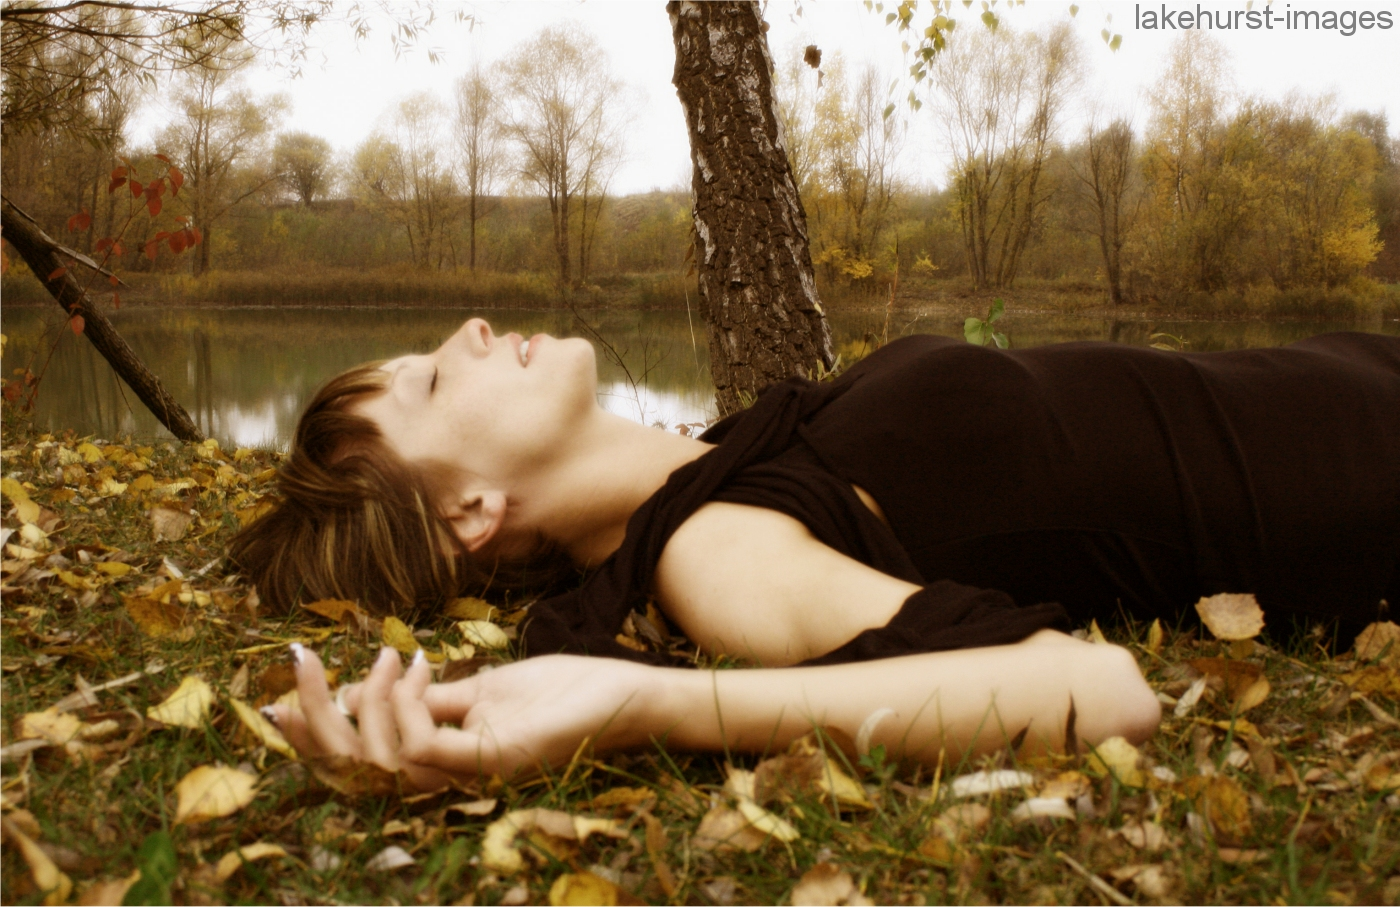 autumn_sleeping_beauty_by_lakehurst_images